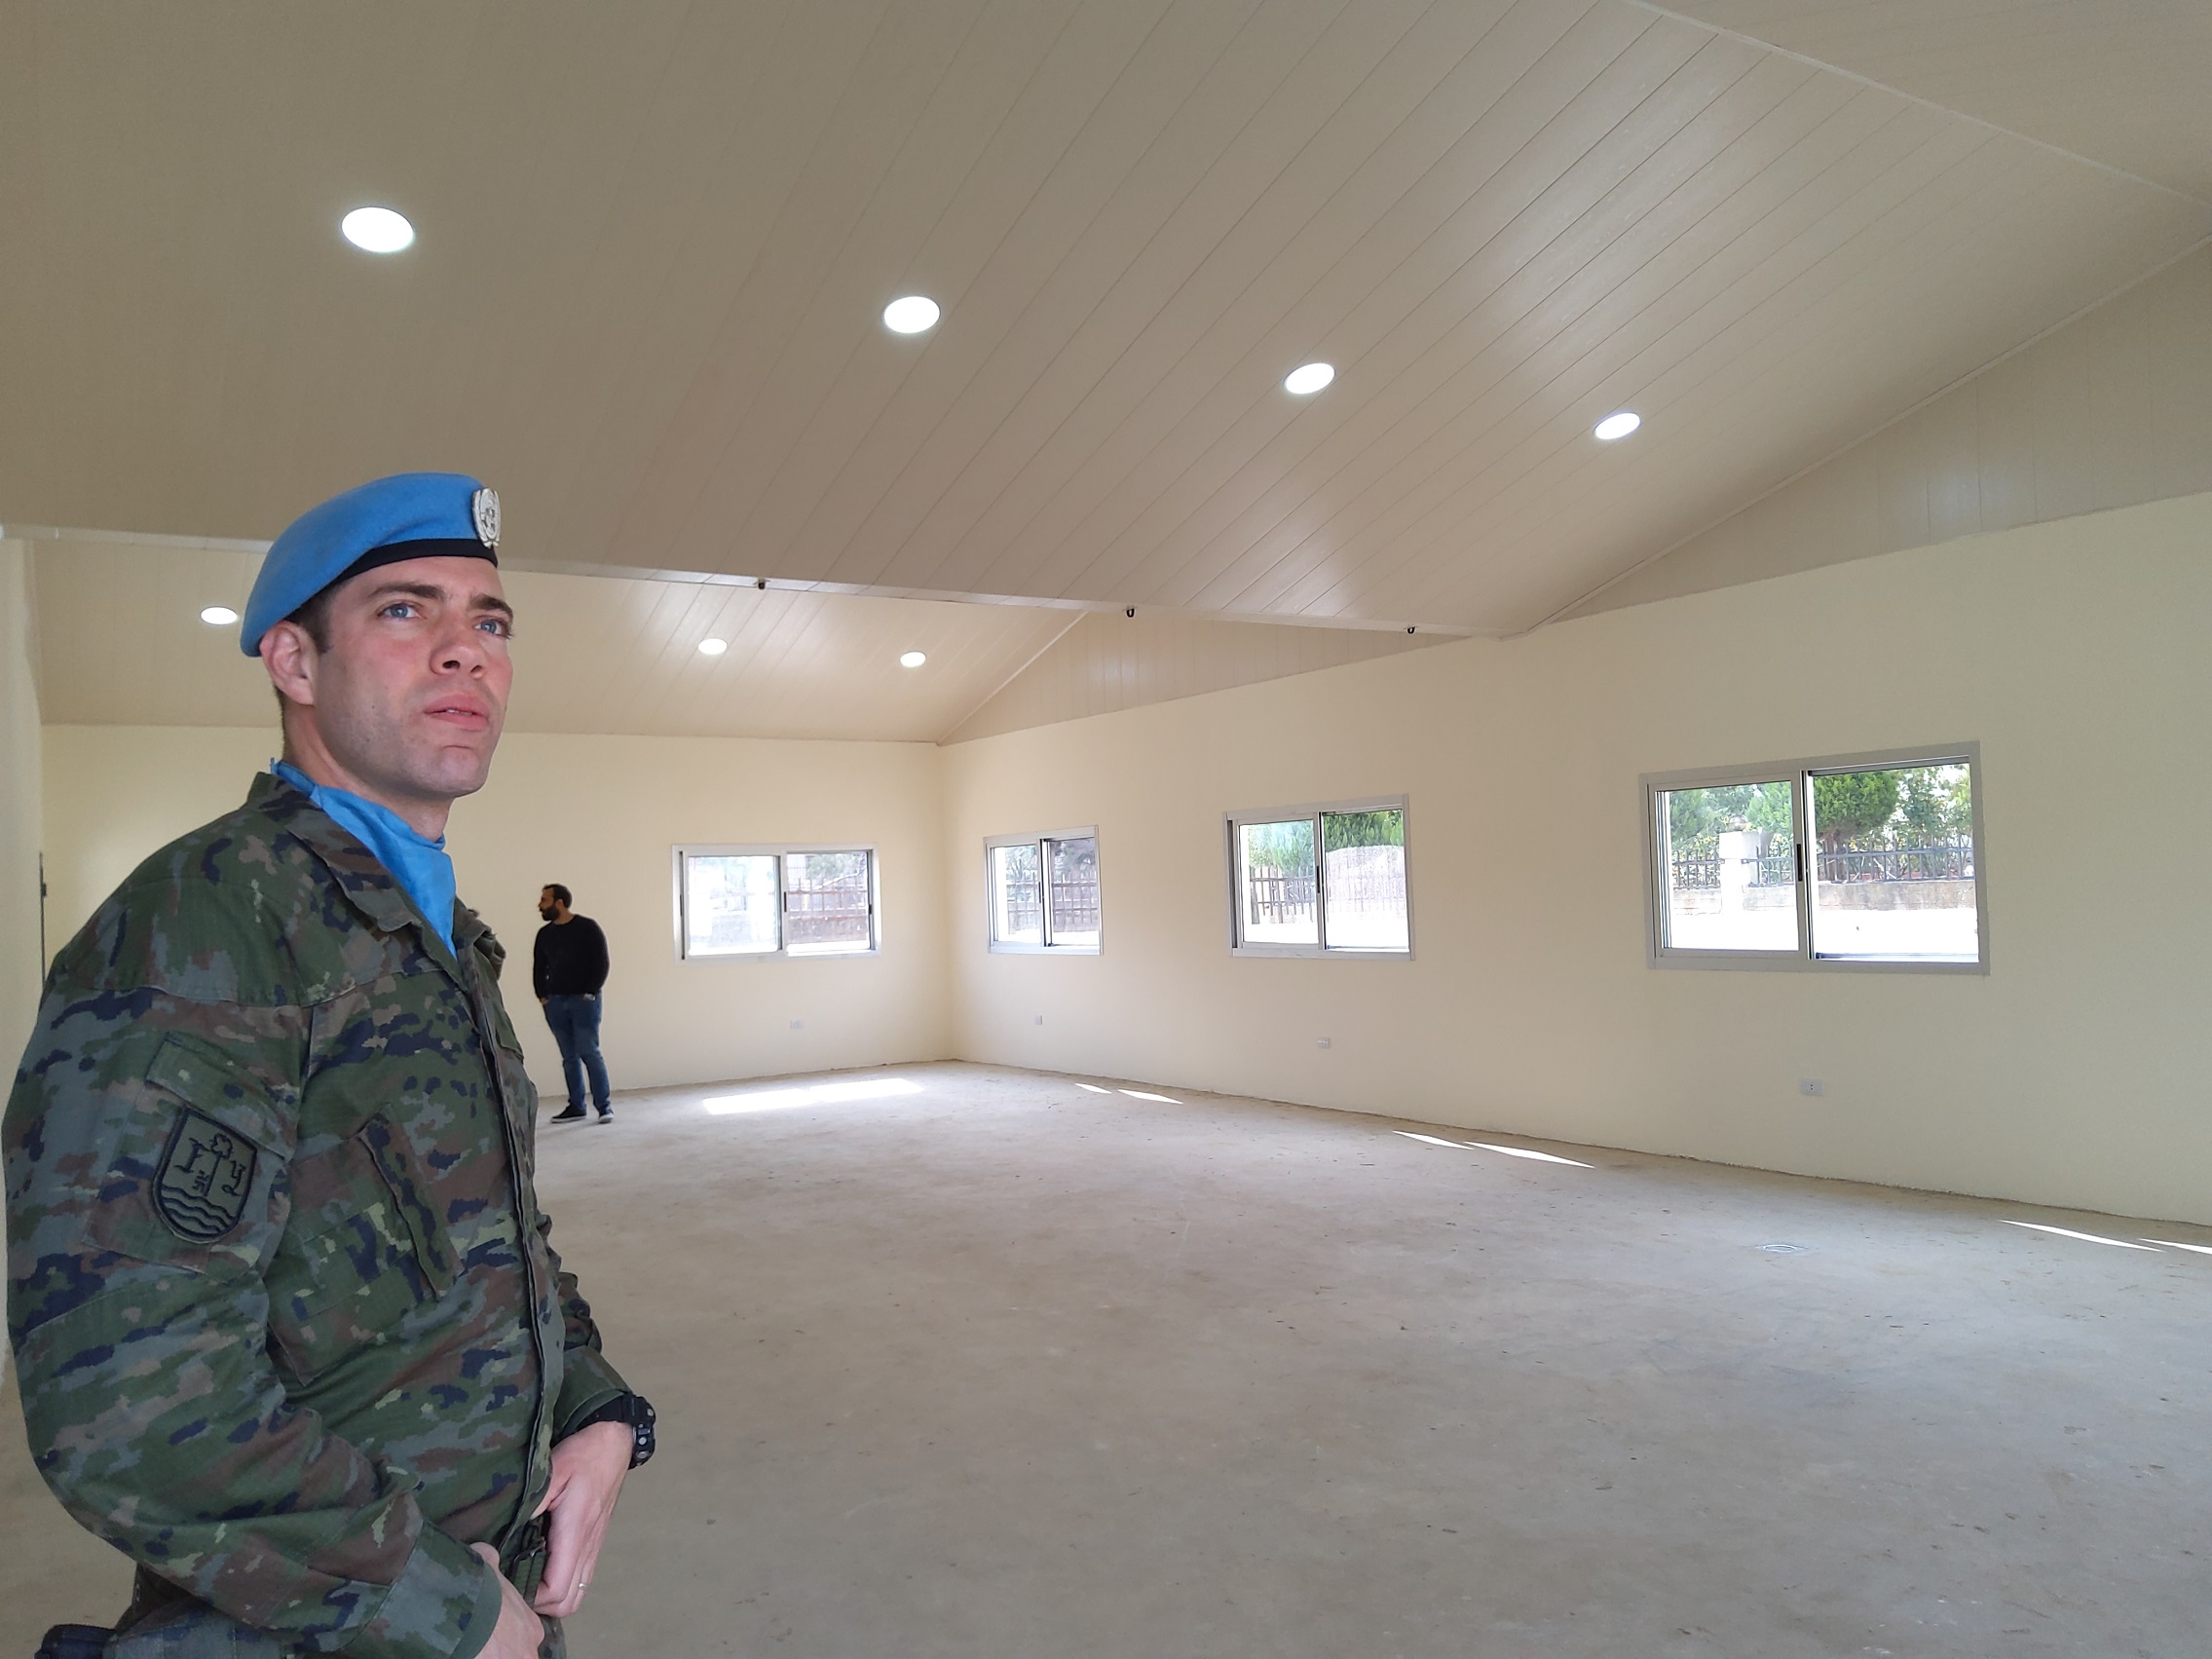 Spanish military personnel inaugurate new classroom in Lebanese school